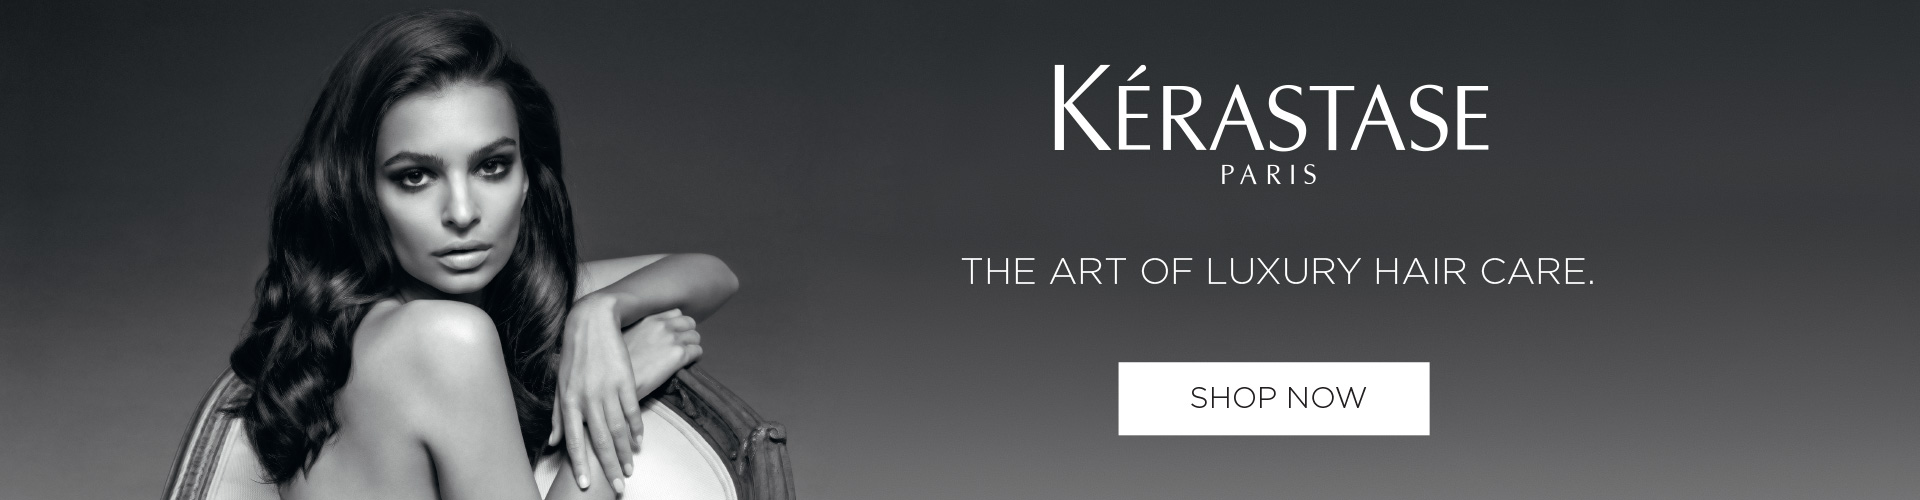 Kerastase Website Header